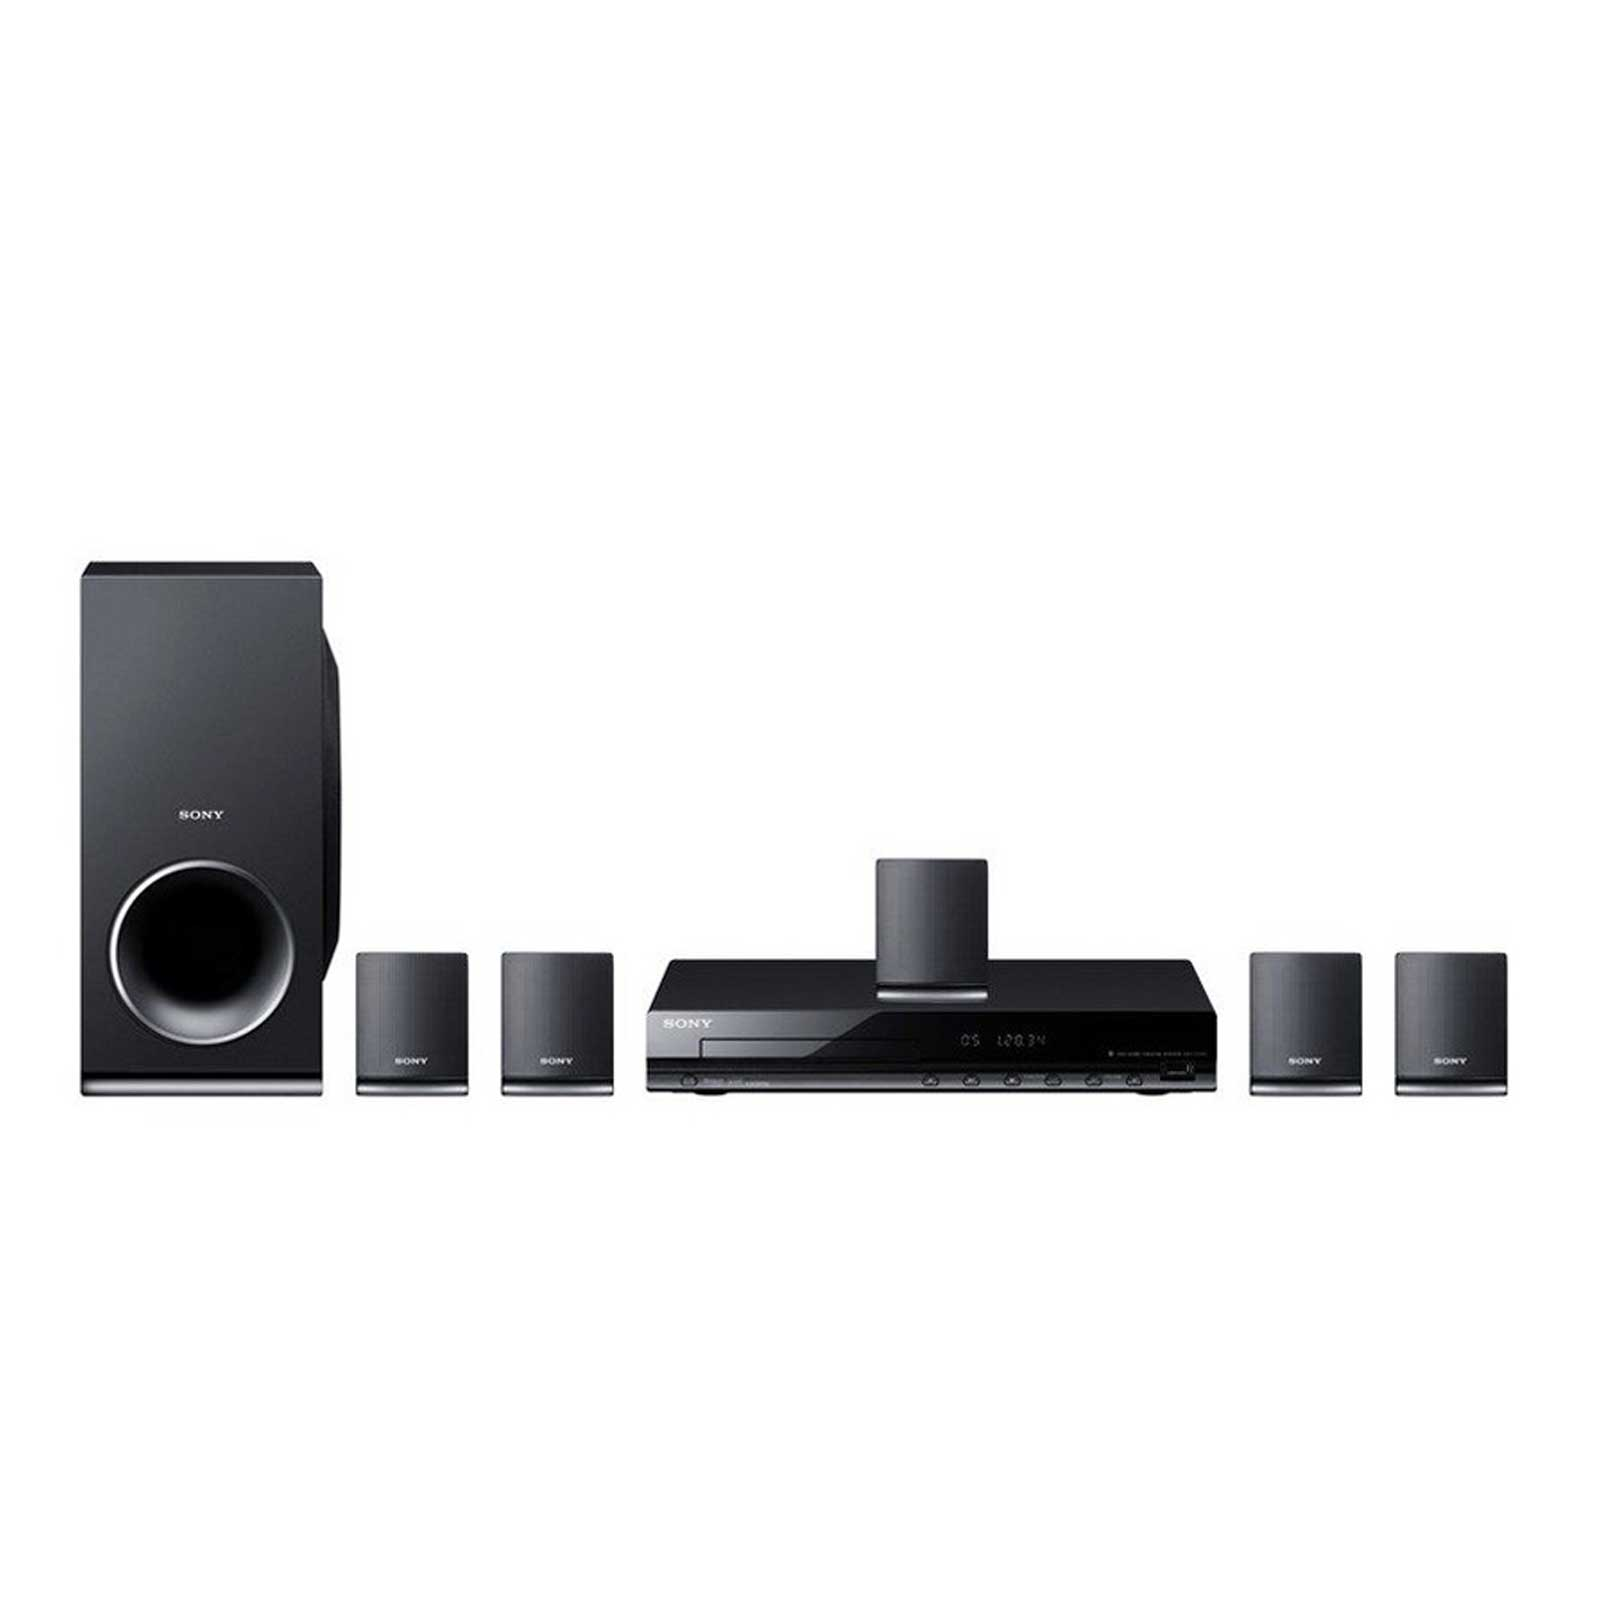 Sony home theatre model dav tz215